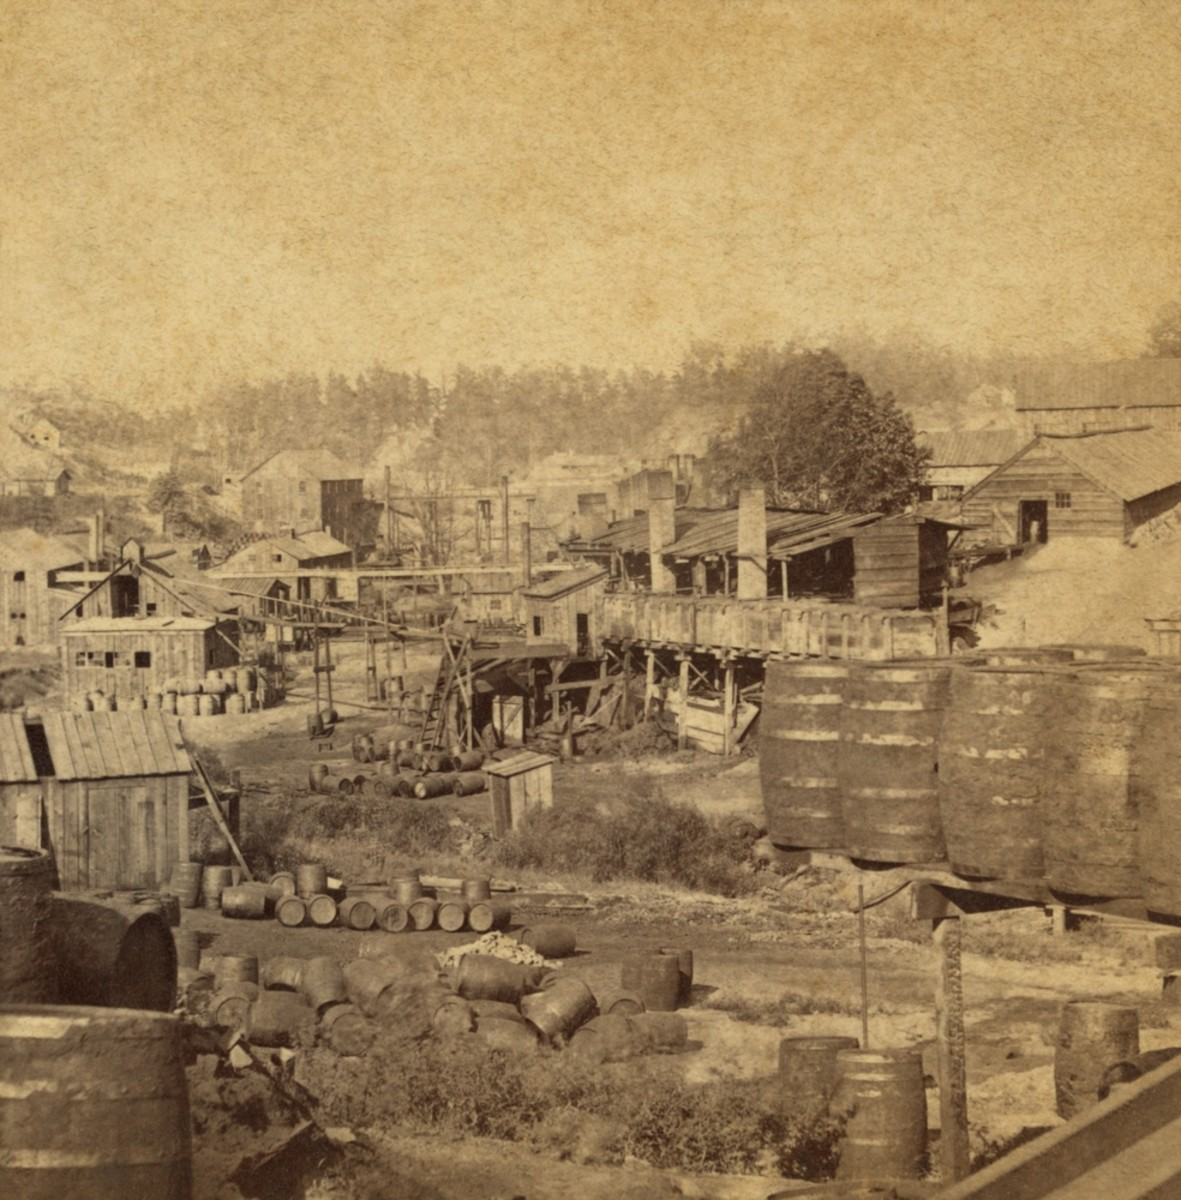 Barrels and buildings at an oil refinery in Erie, Pennsylvania, in the 1870s. (Photo: Everett Historical/Shutterstock)